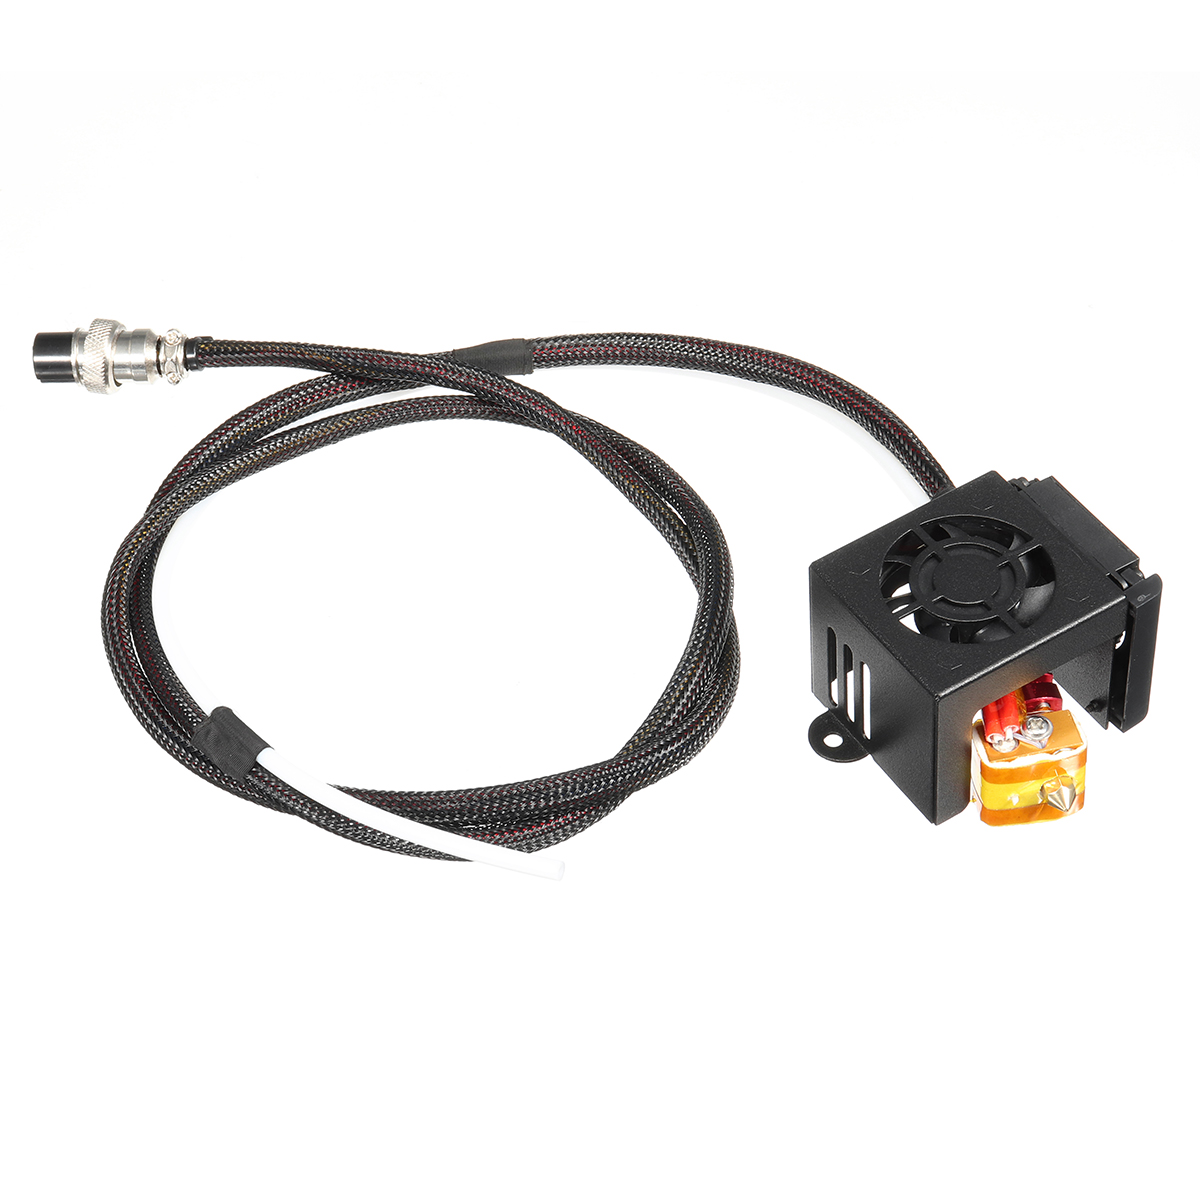 3D Printer Parts 0.4mm Nozzle Hot End Extruder Kits With Cooling Fan For Creality CR-10 15